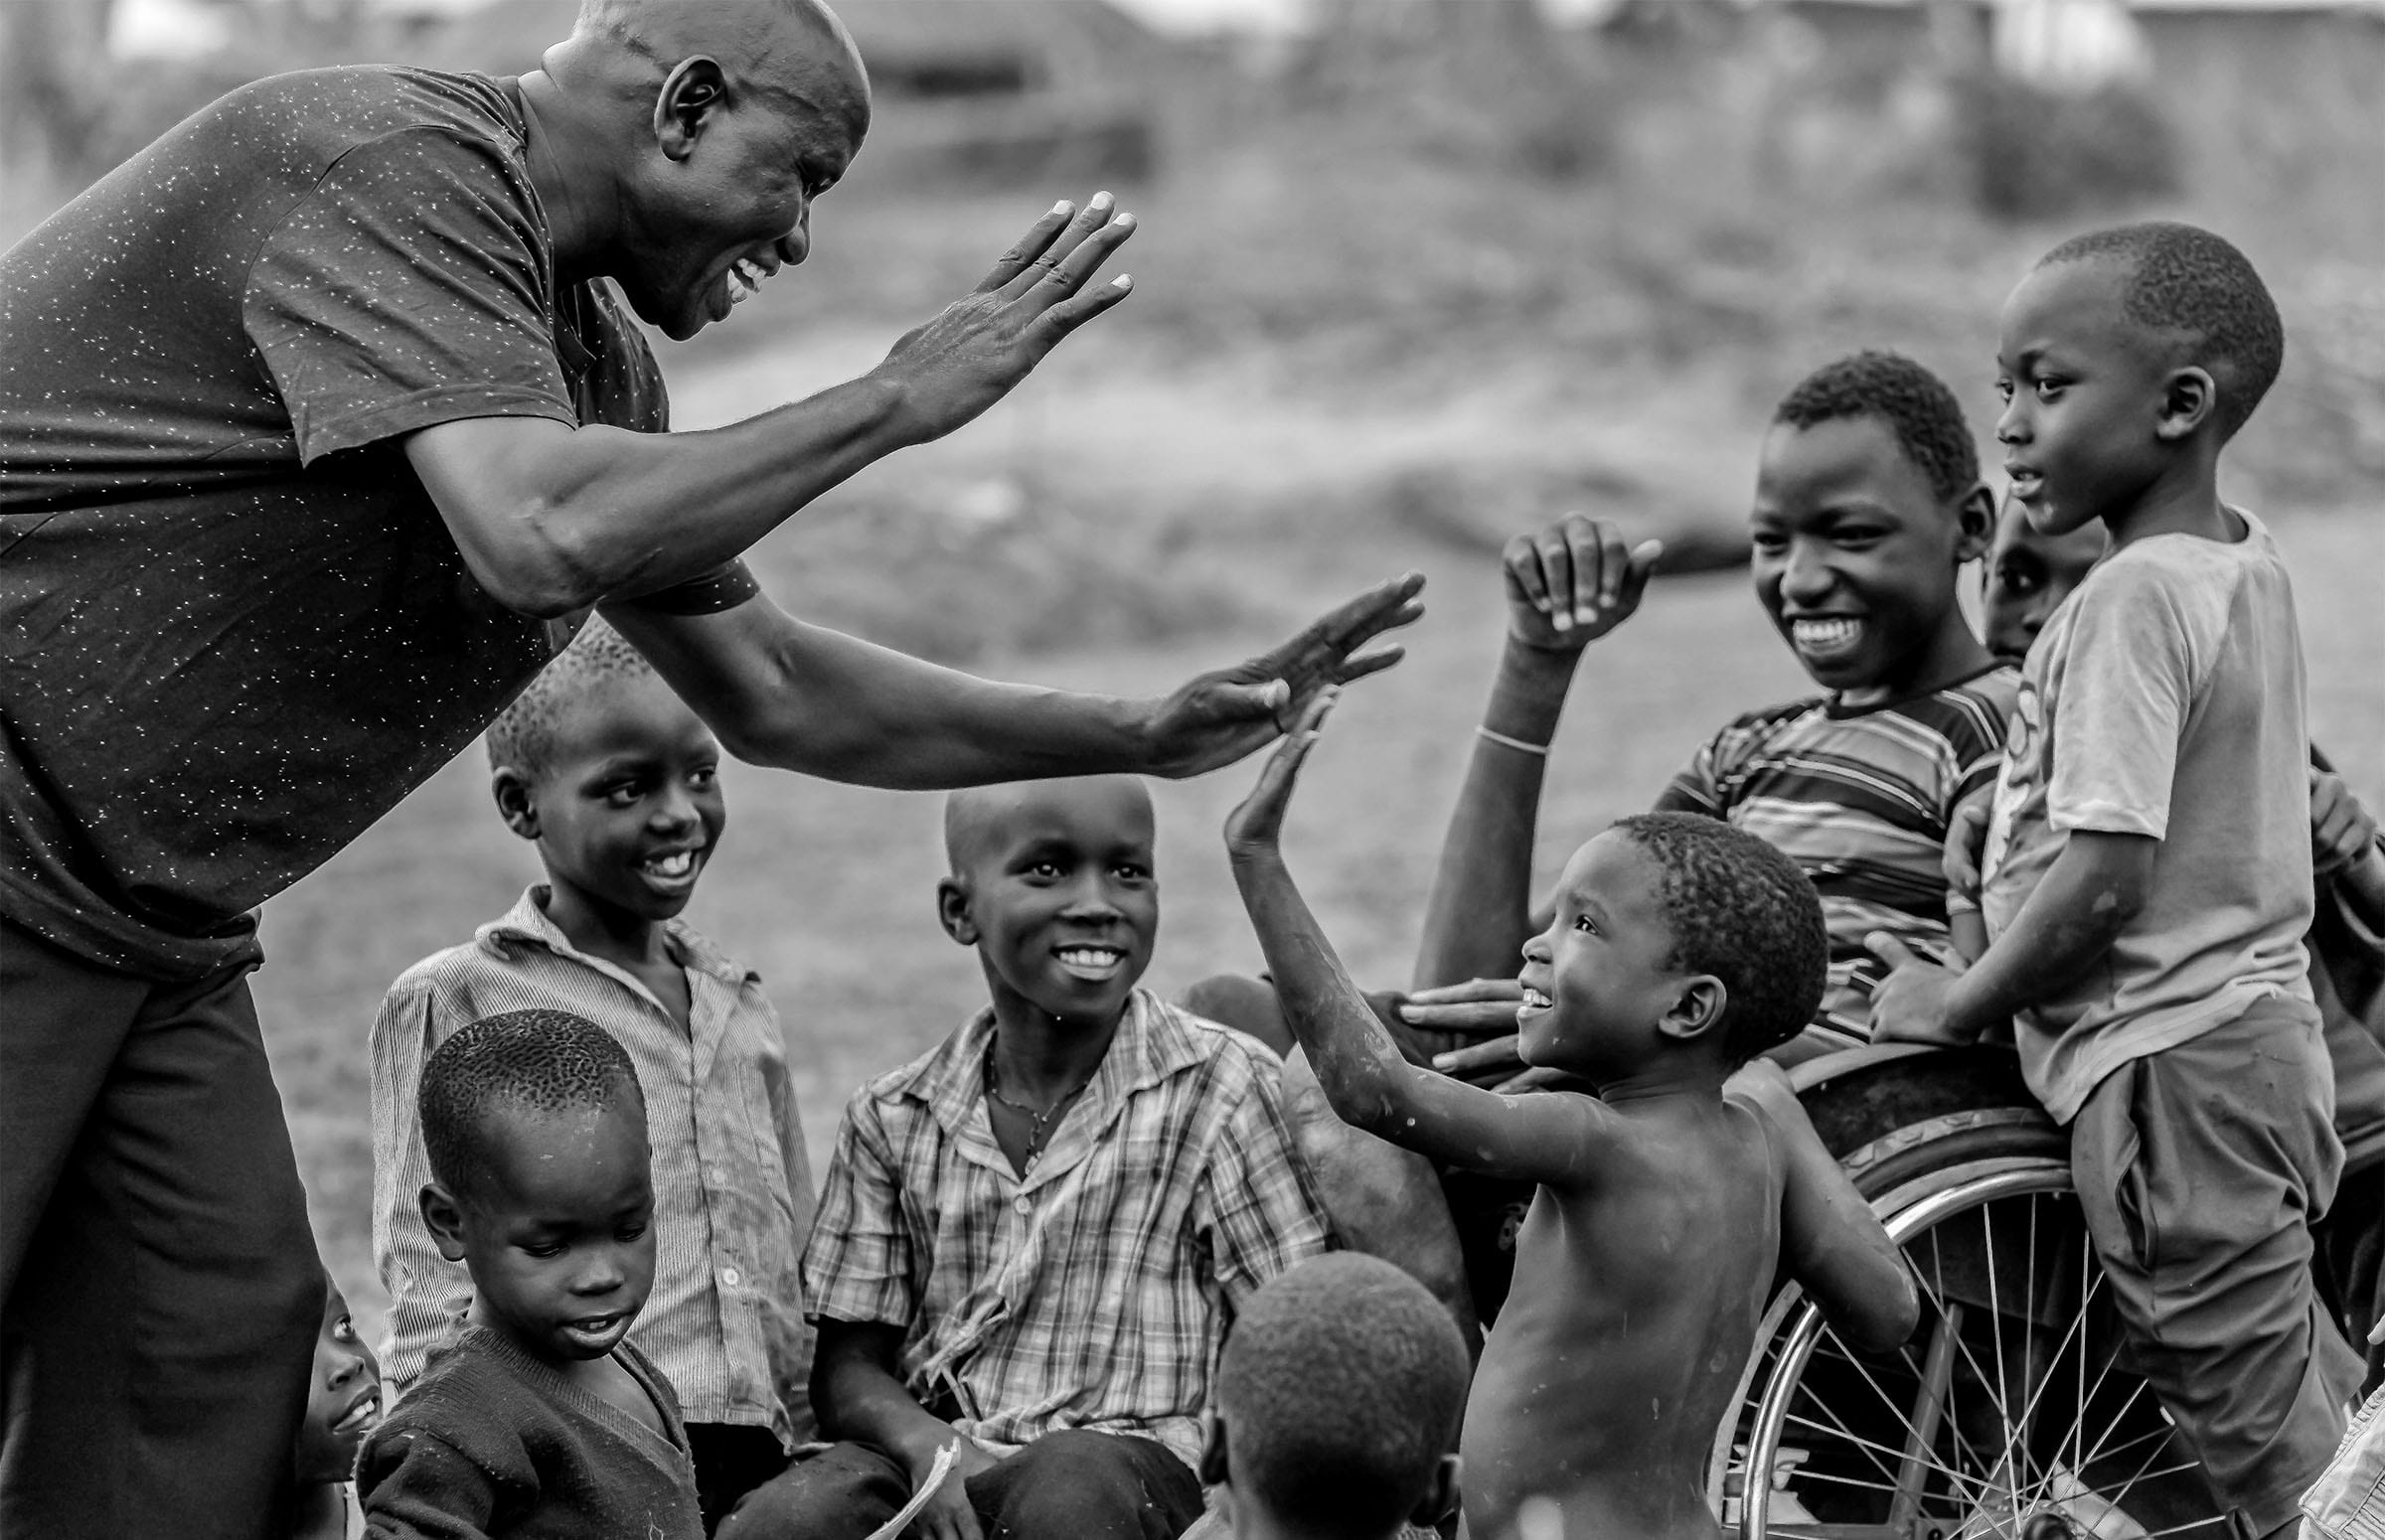 a man high fives children in the setting of a refugee camp